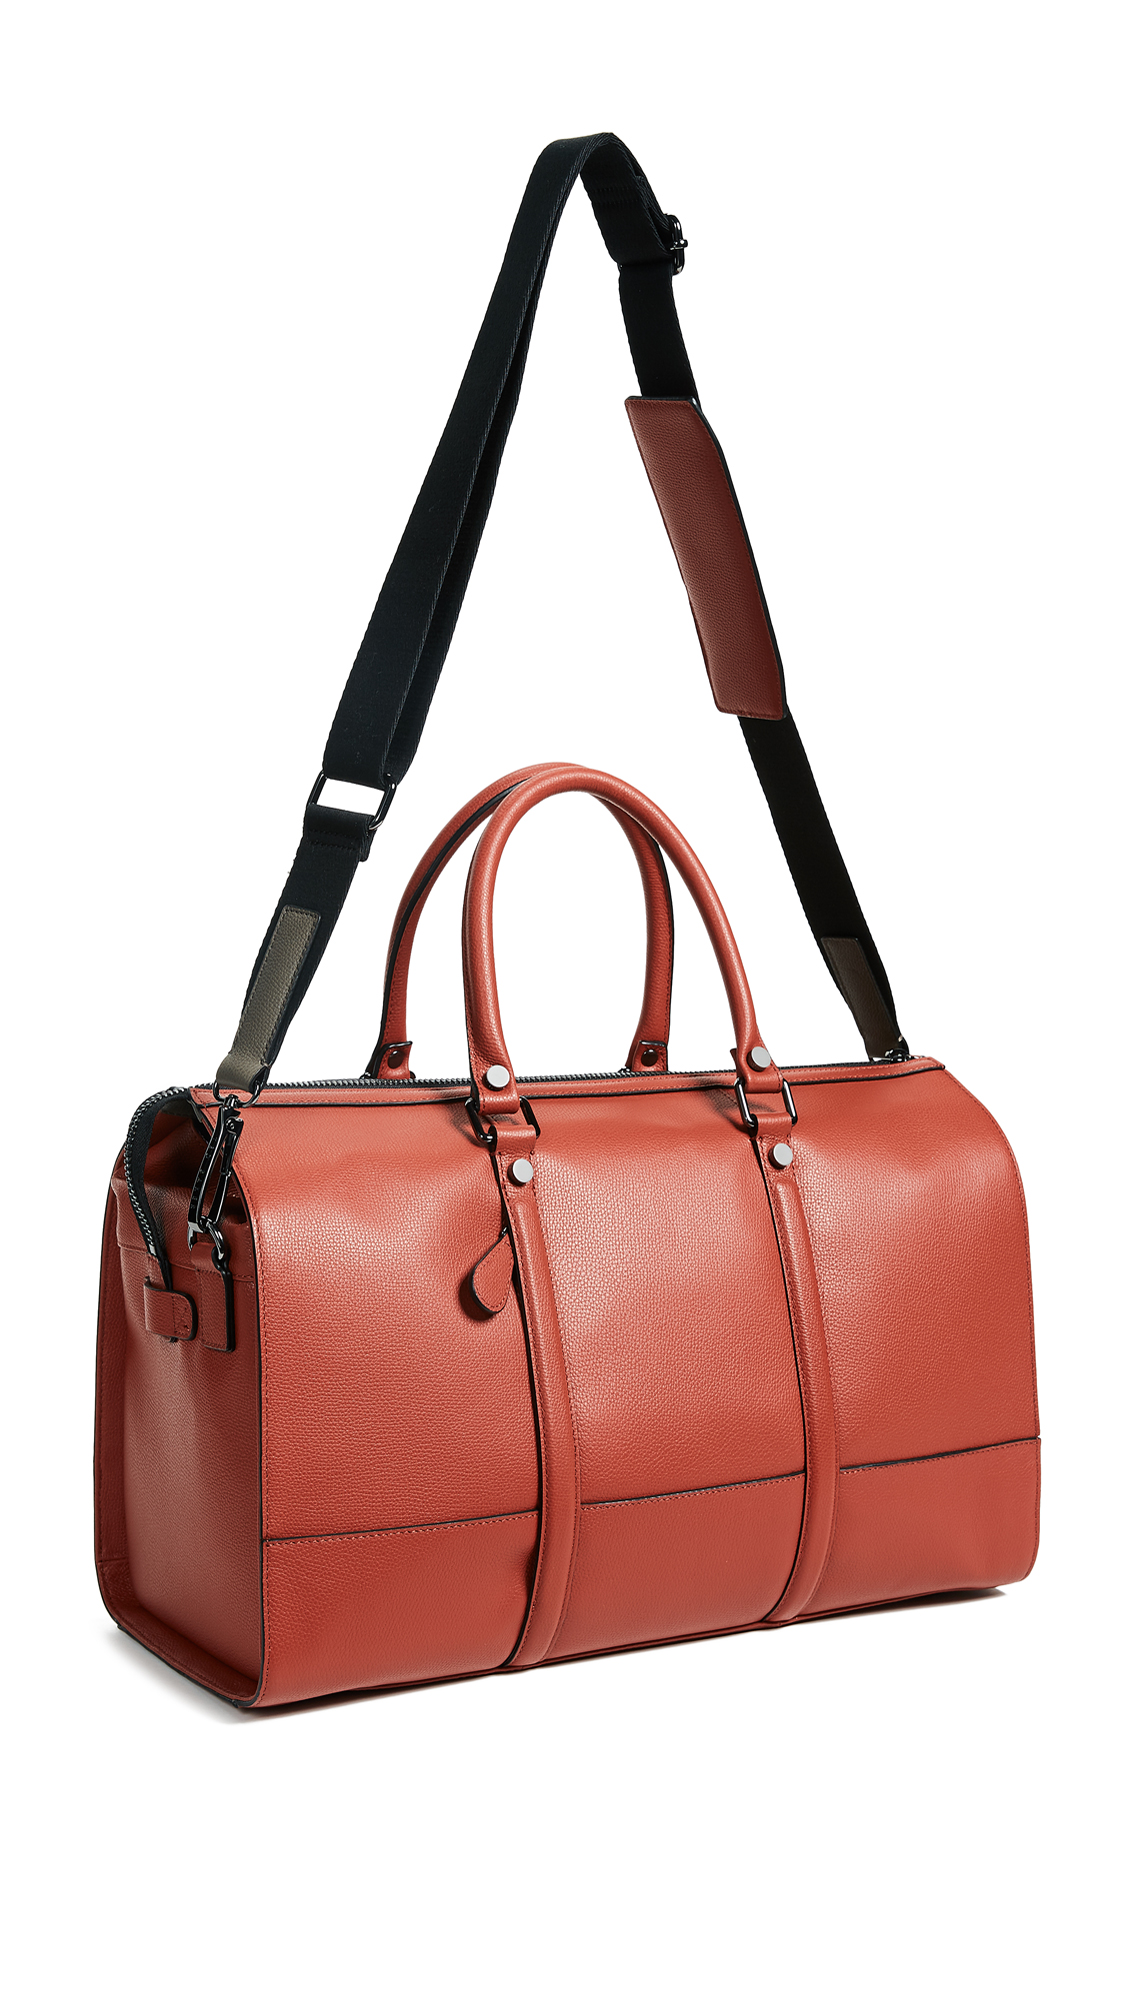 b8872b448a8b0 Ted Baker Radical Duffel Bag